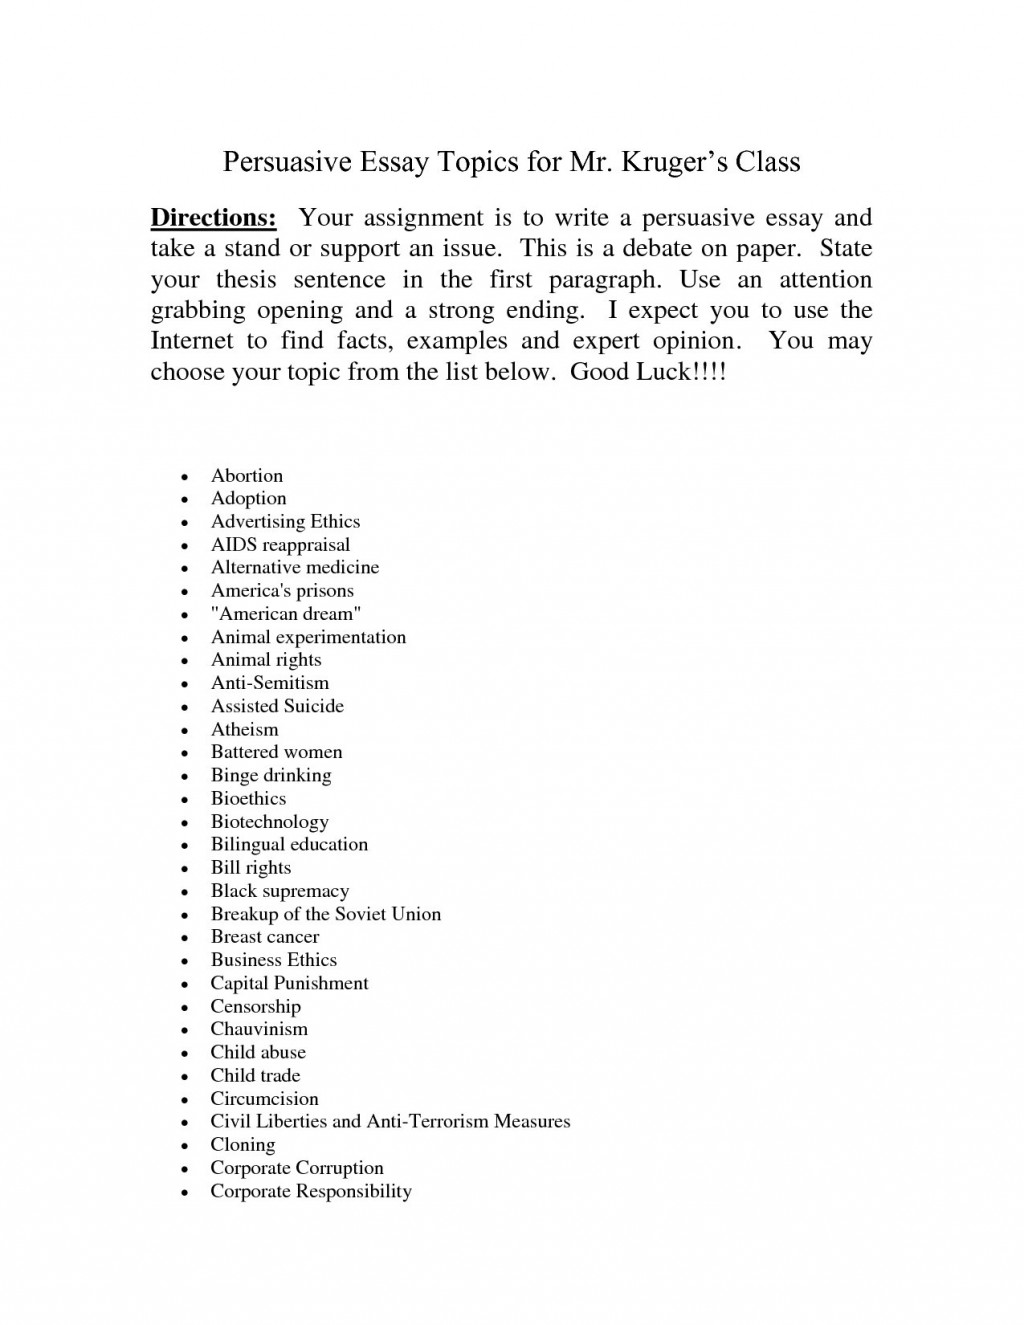 017 Research Paper Argumentative Essay Topics Remarkable 2018 In The Philippines Easy Middle School Large